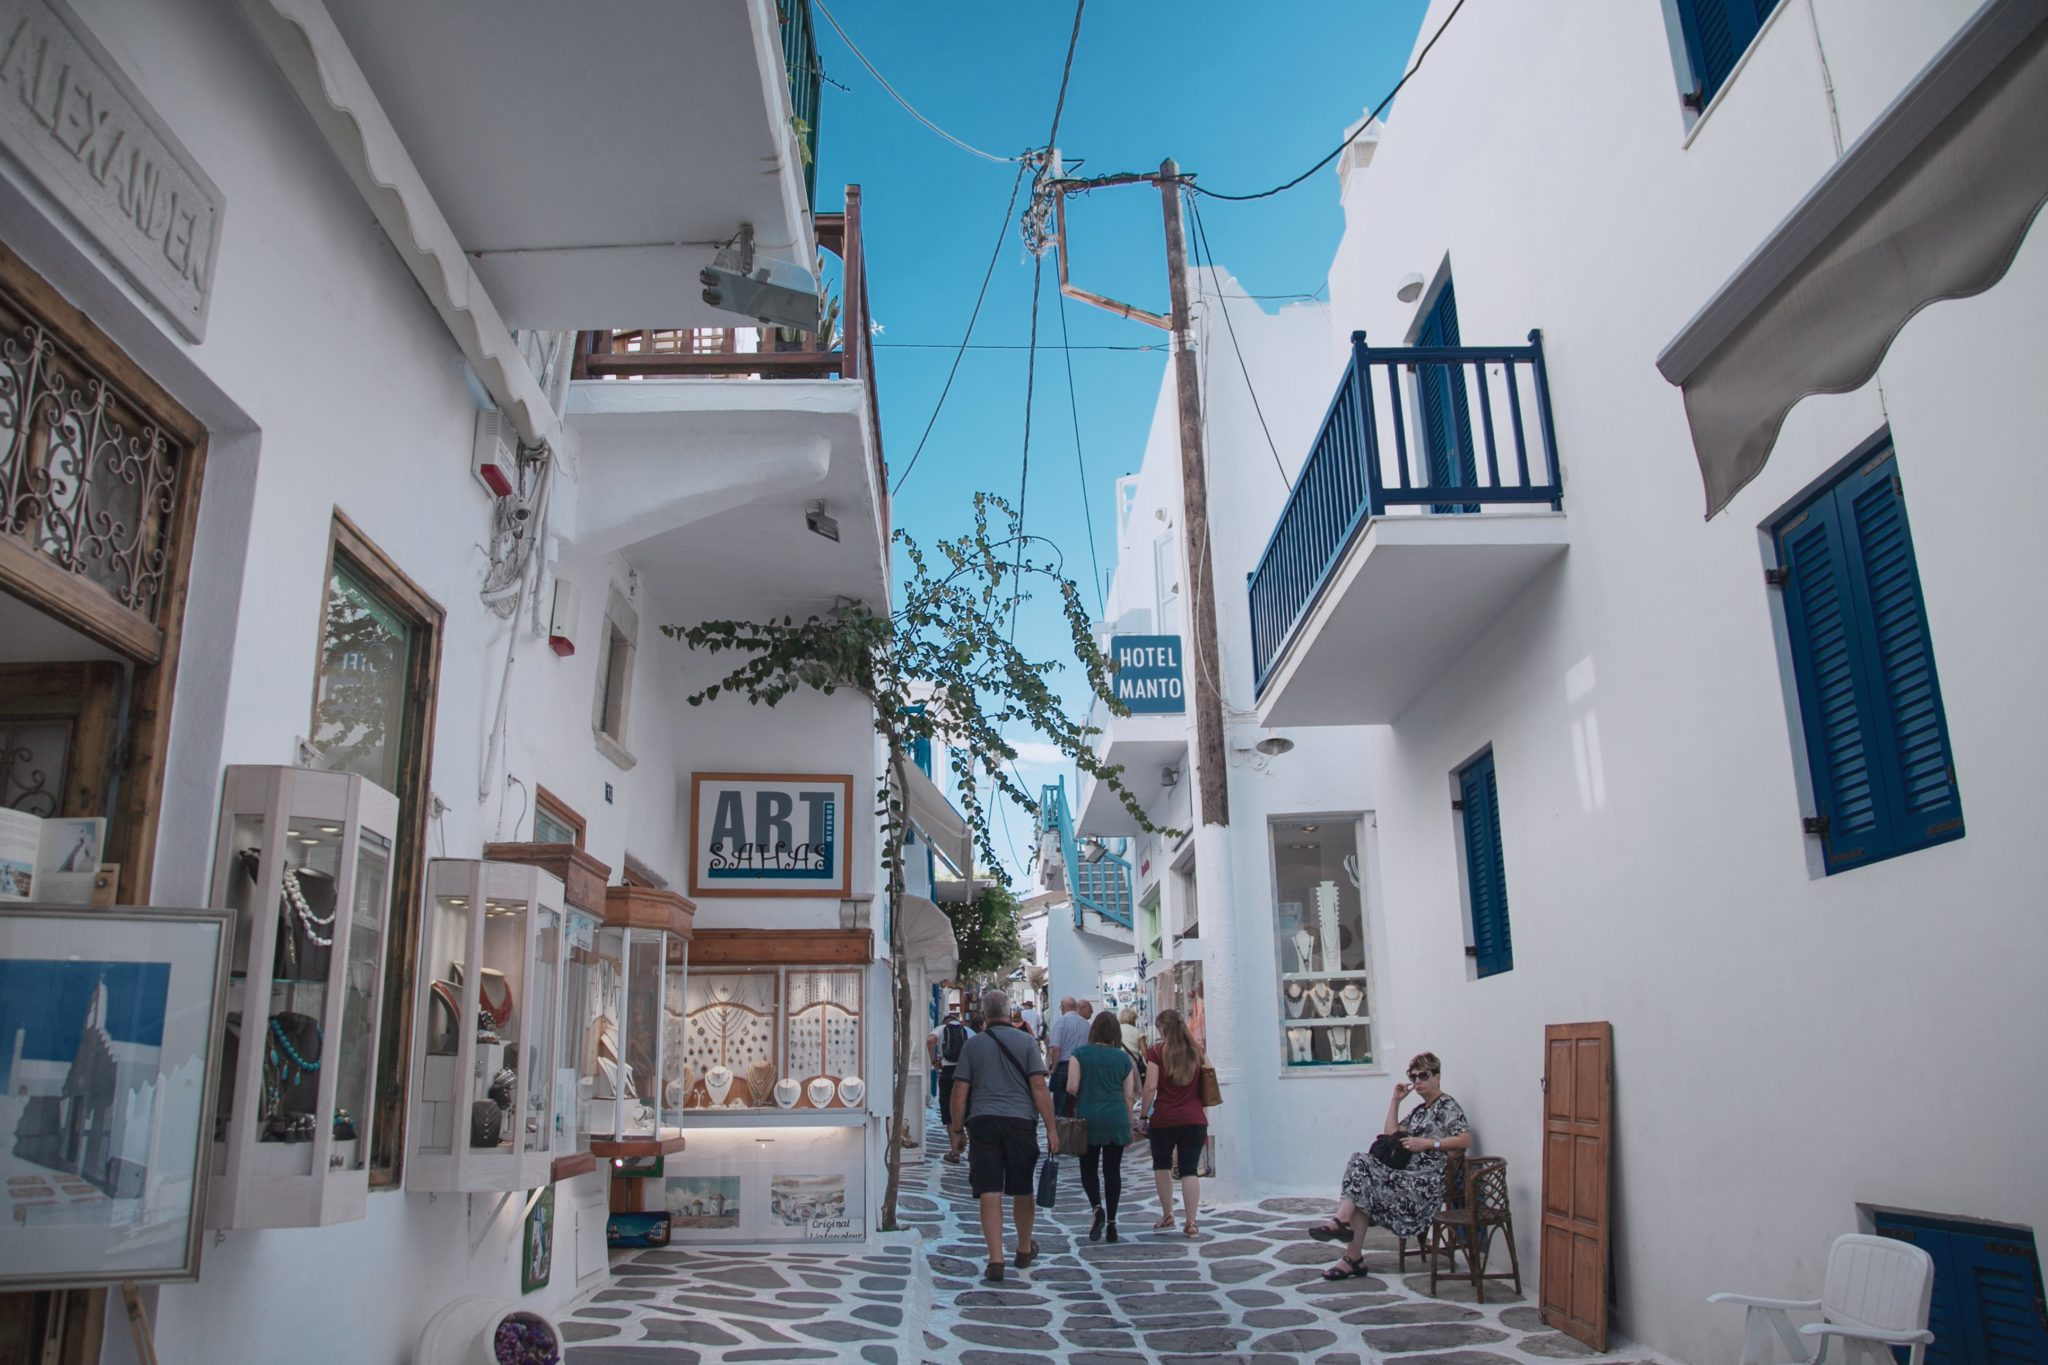 Mykonos - 7 nights + flight from Vienna = 122€